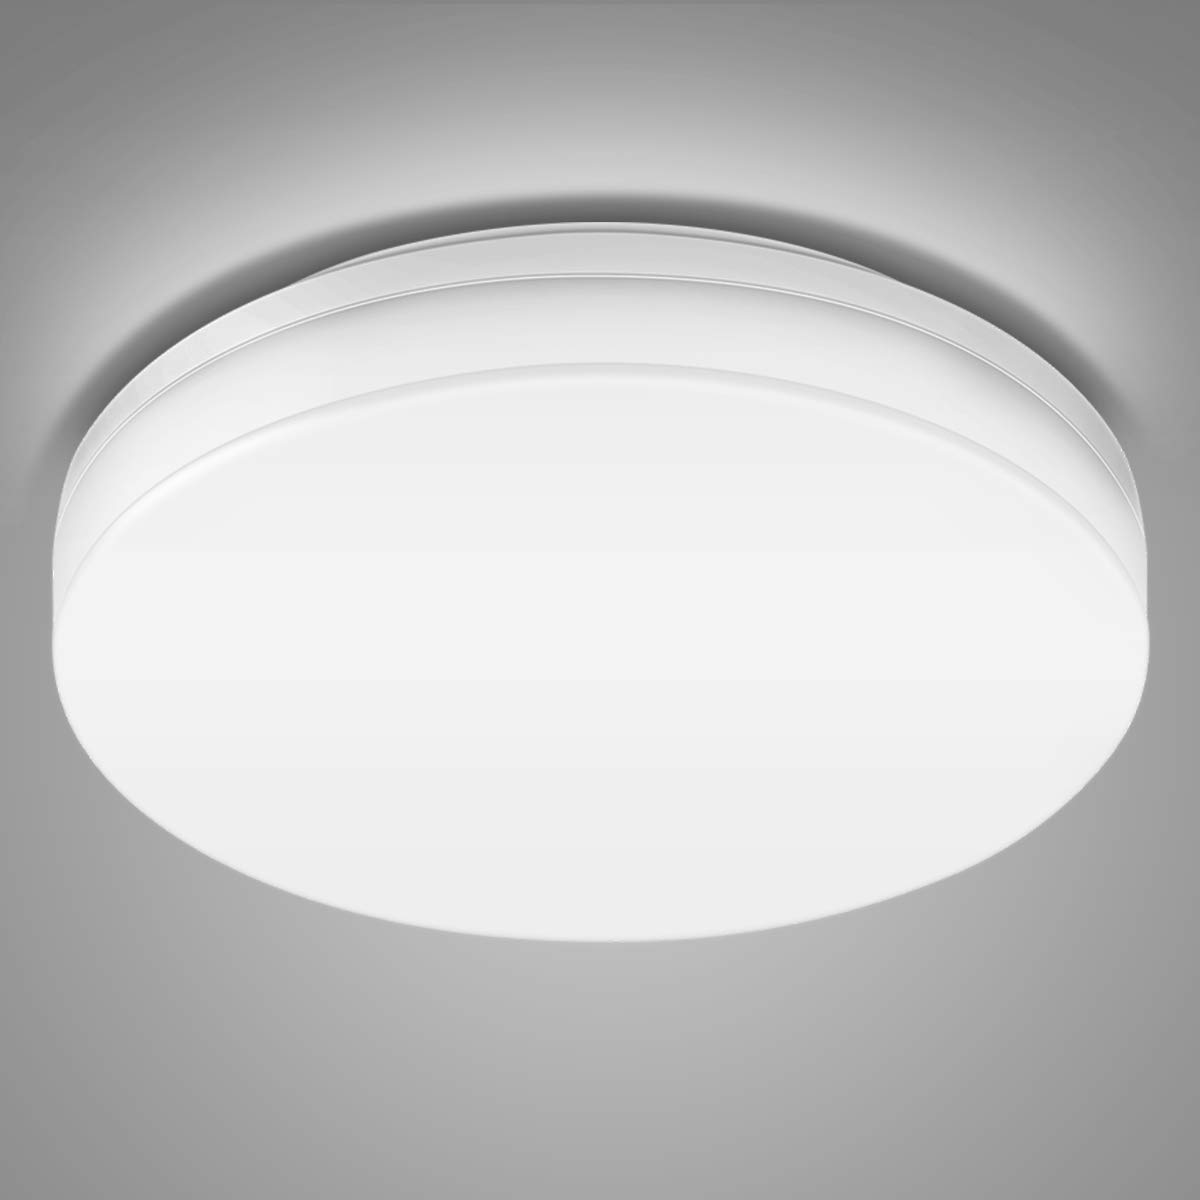 LE LED Ceiling Light, 15W, 1250lm, 100W Incandescent Replacement, 8.7 Inch Flush Mount Lighting, Non-dimmable, for Bathroom, Living Room, Bedroom, Kitchen and More, Daylight White